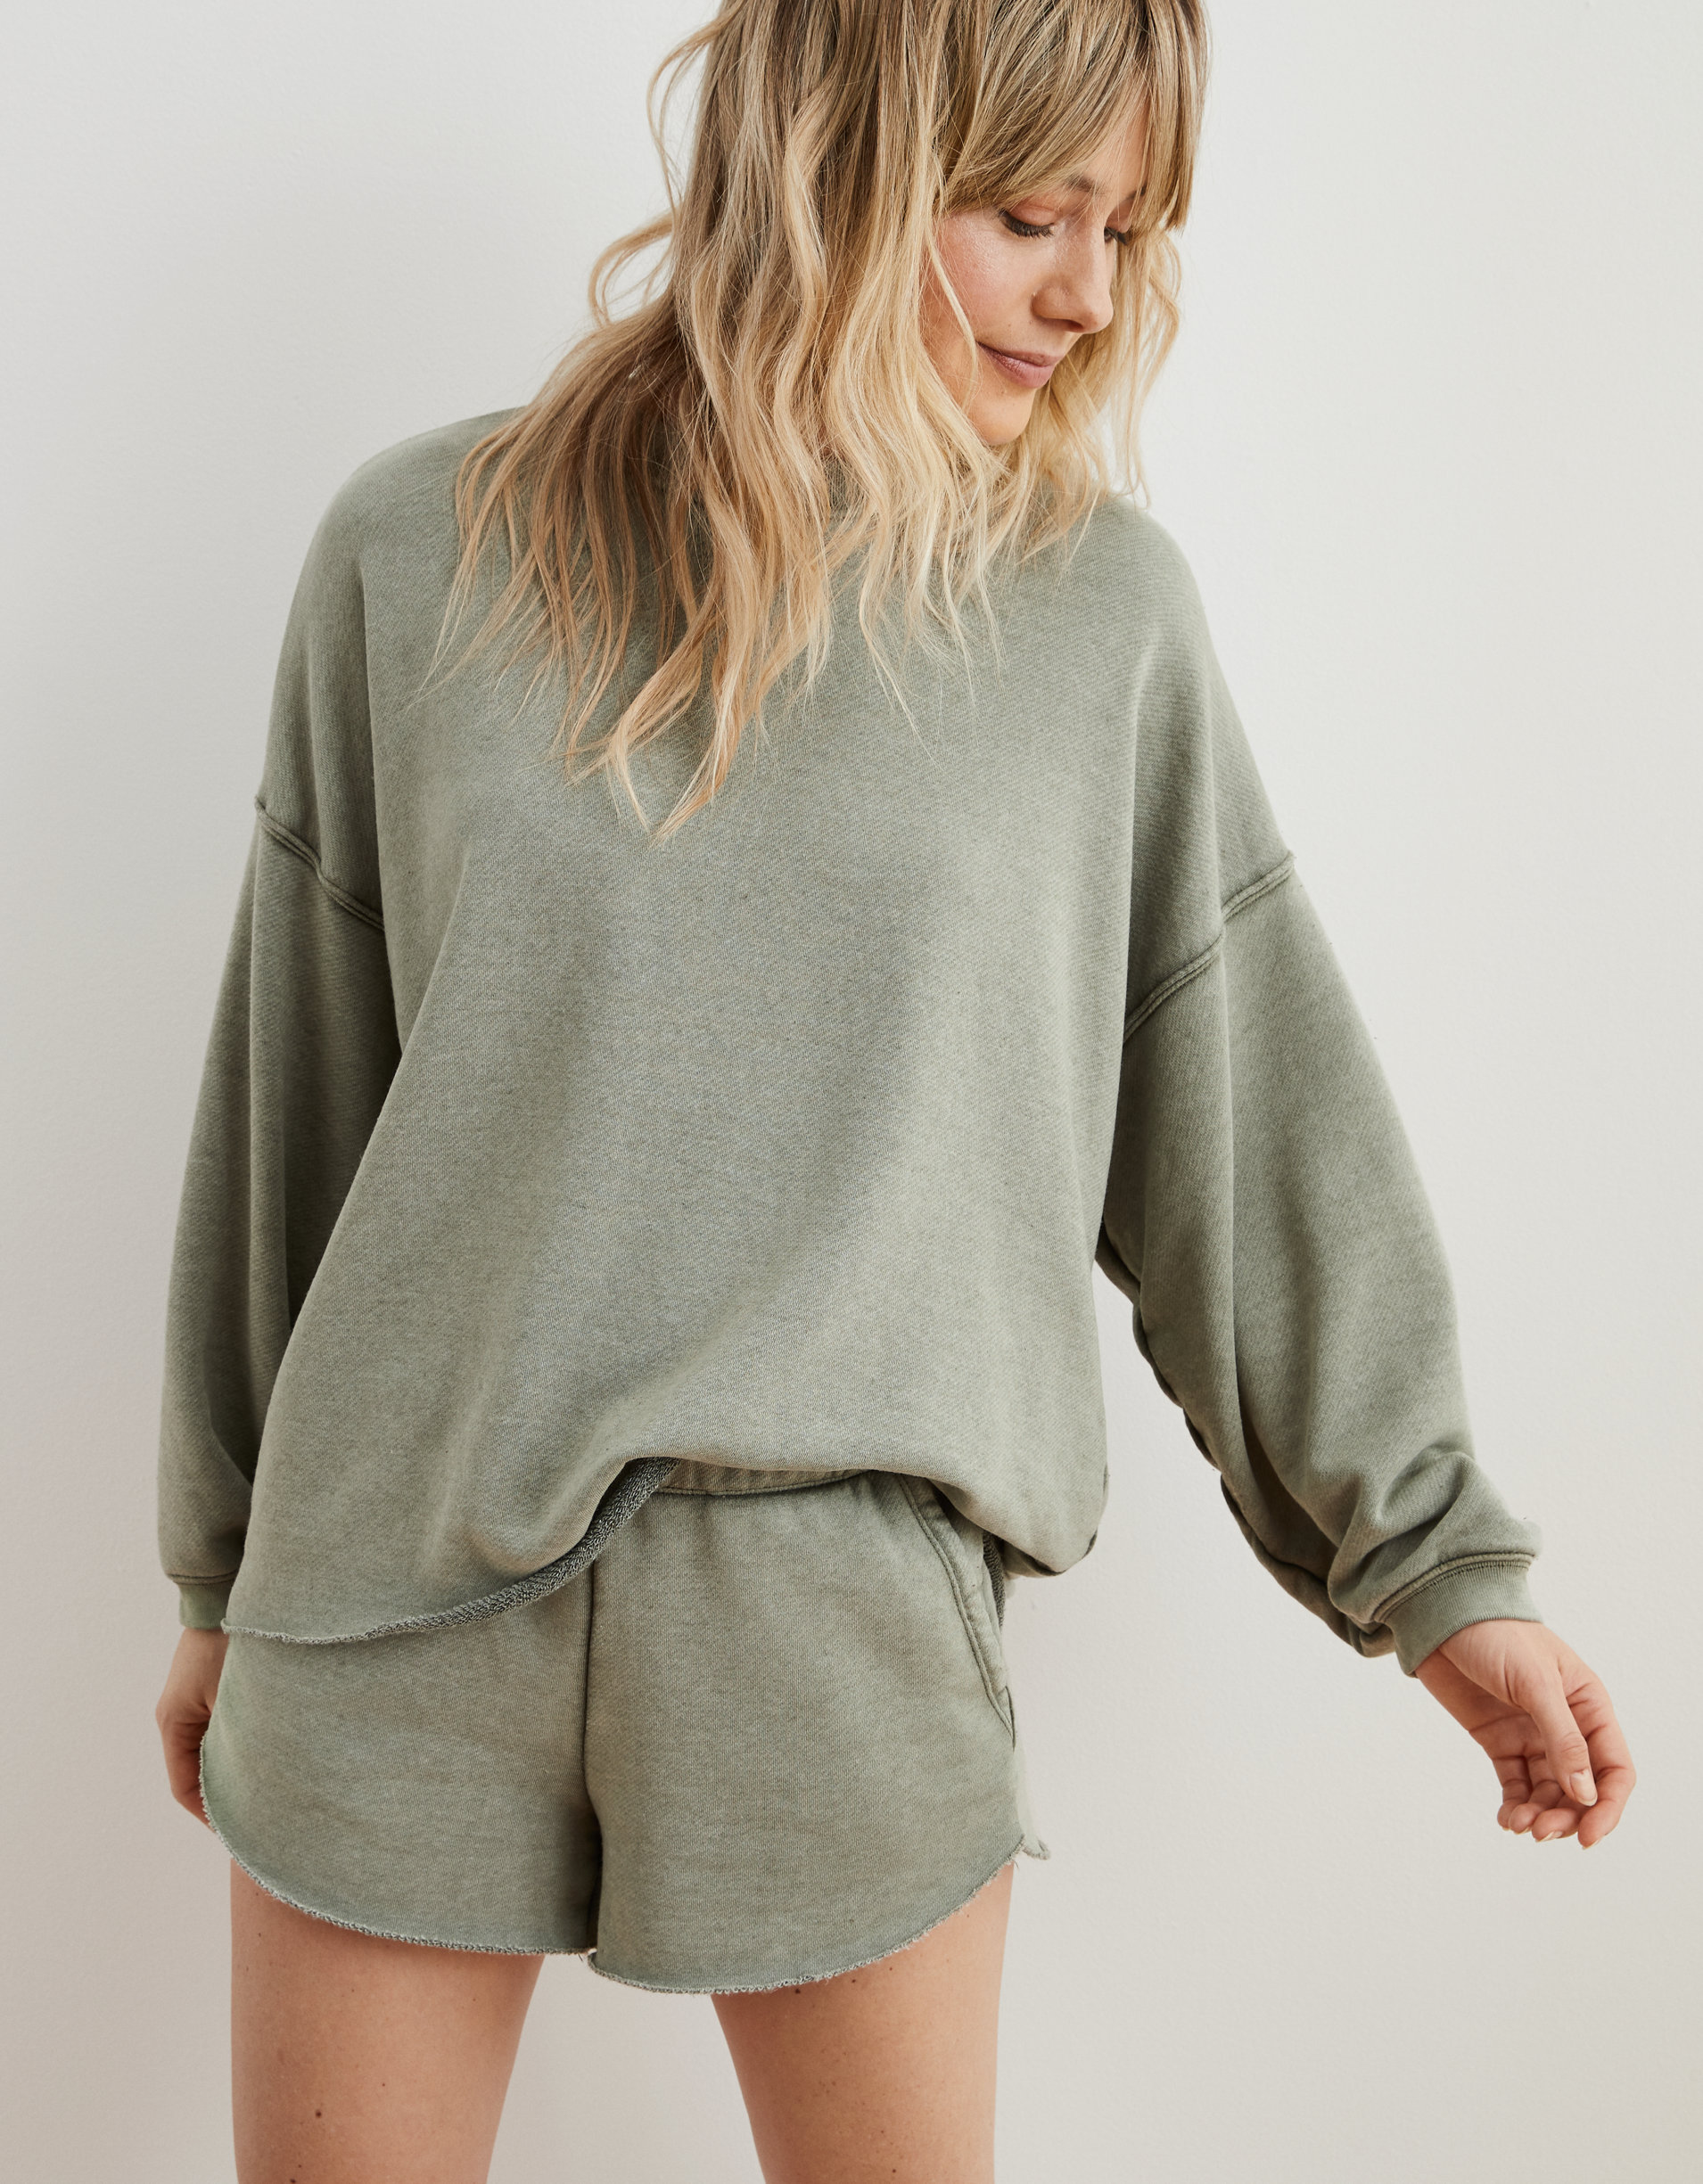 WEEKLY FINDS; including the Aerie Sunday Soft Sweatshirt and Short | Cozy Amazon Slippers